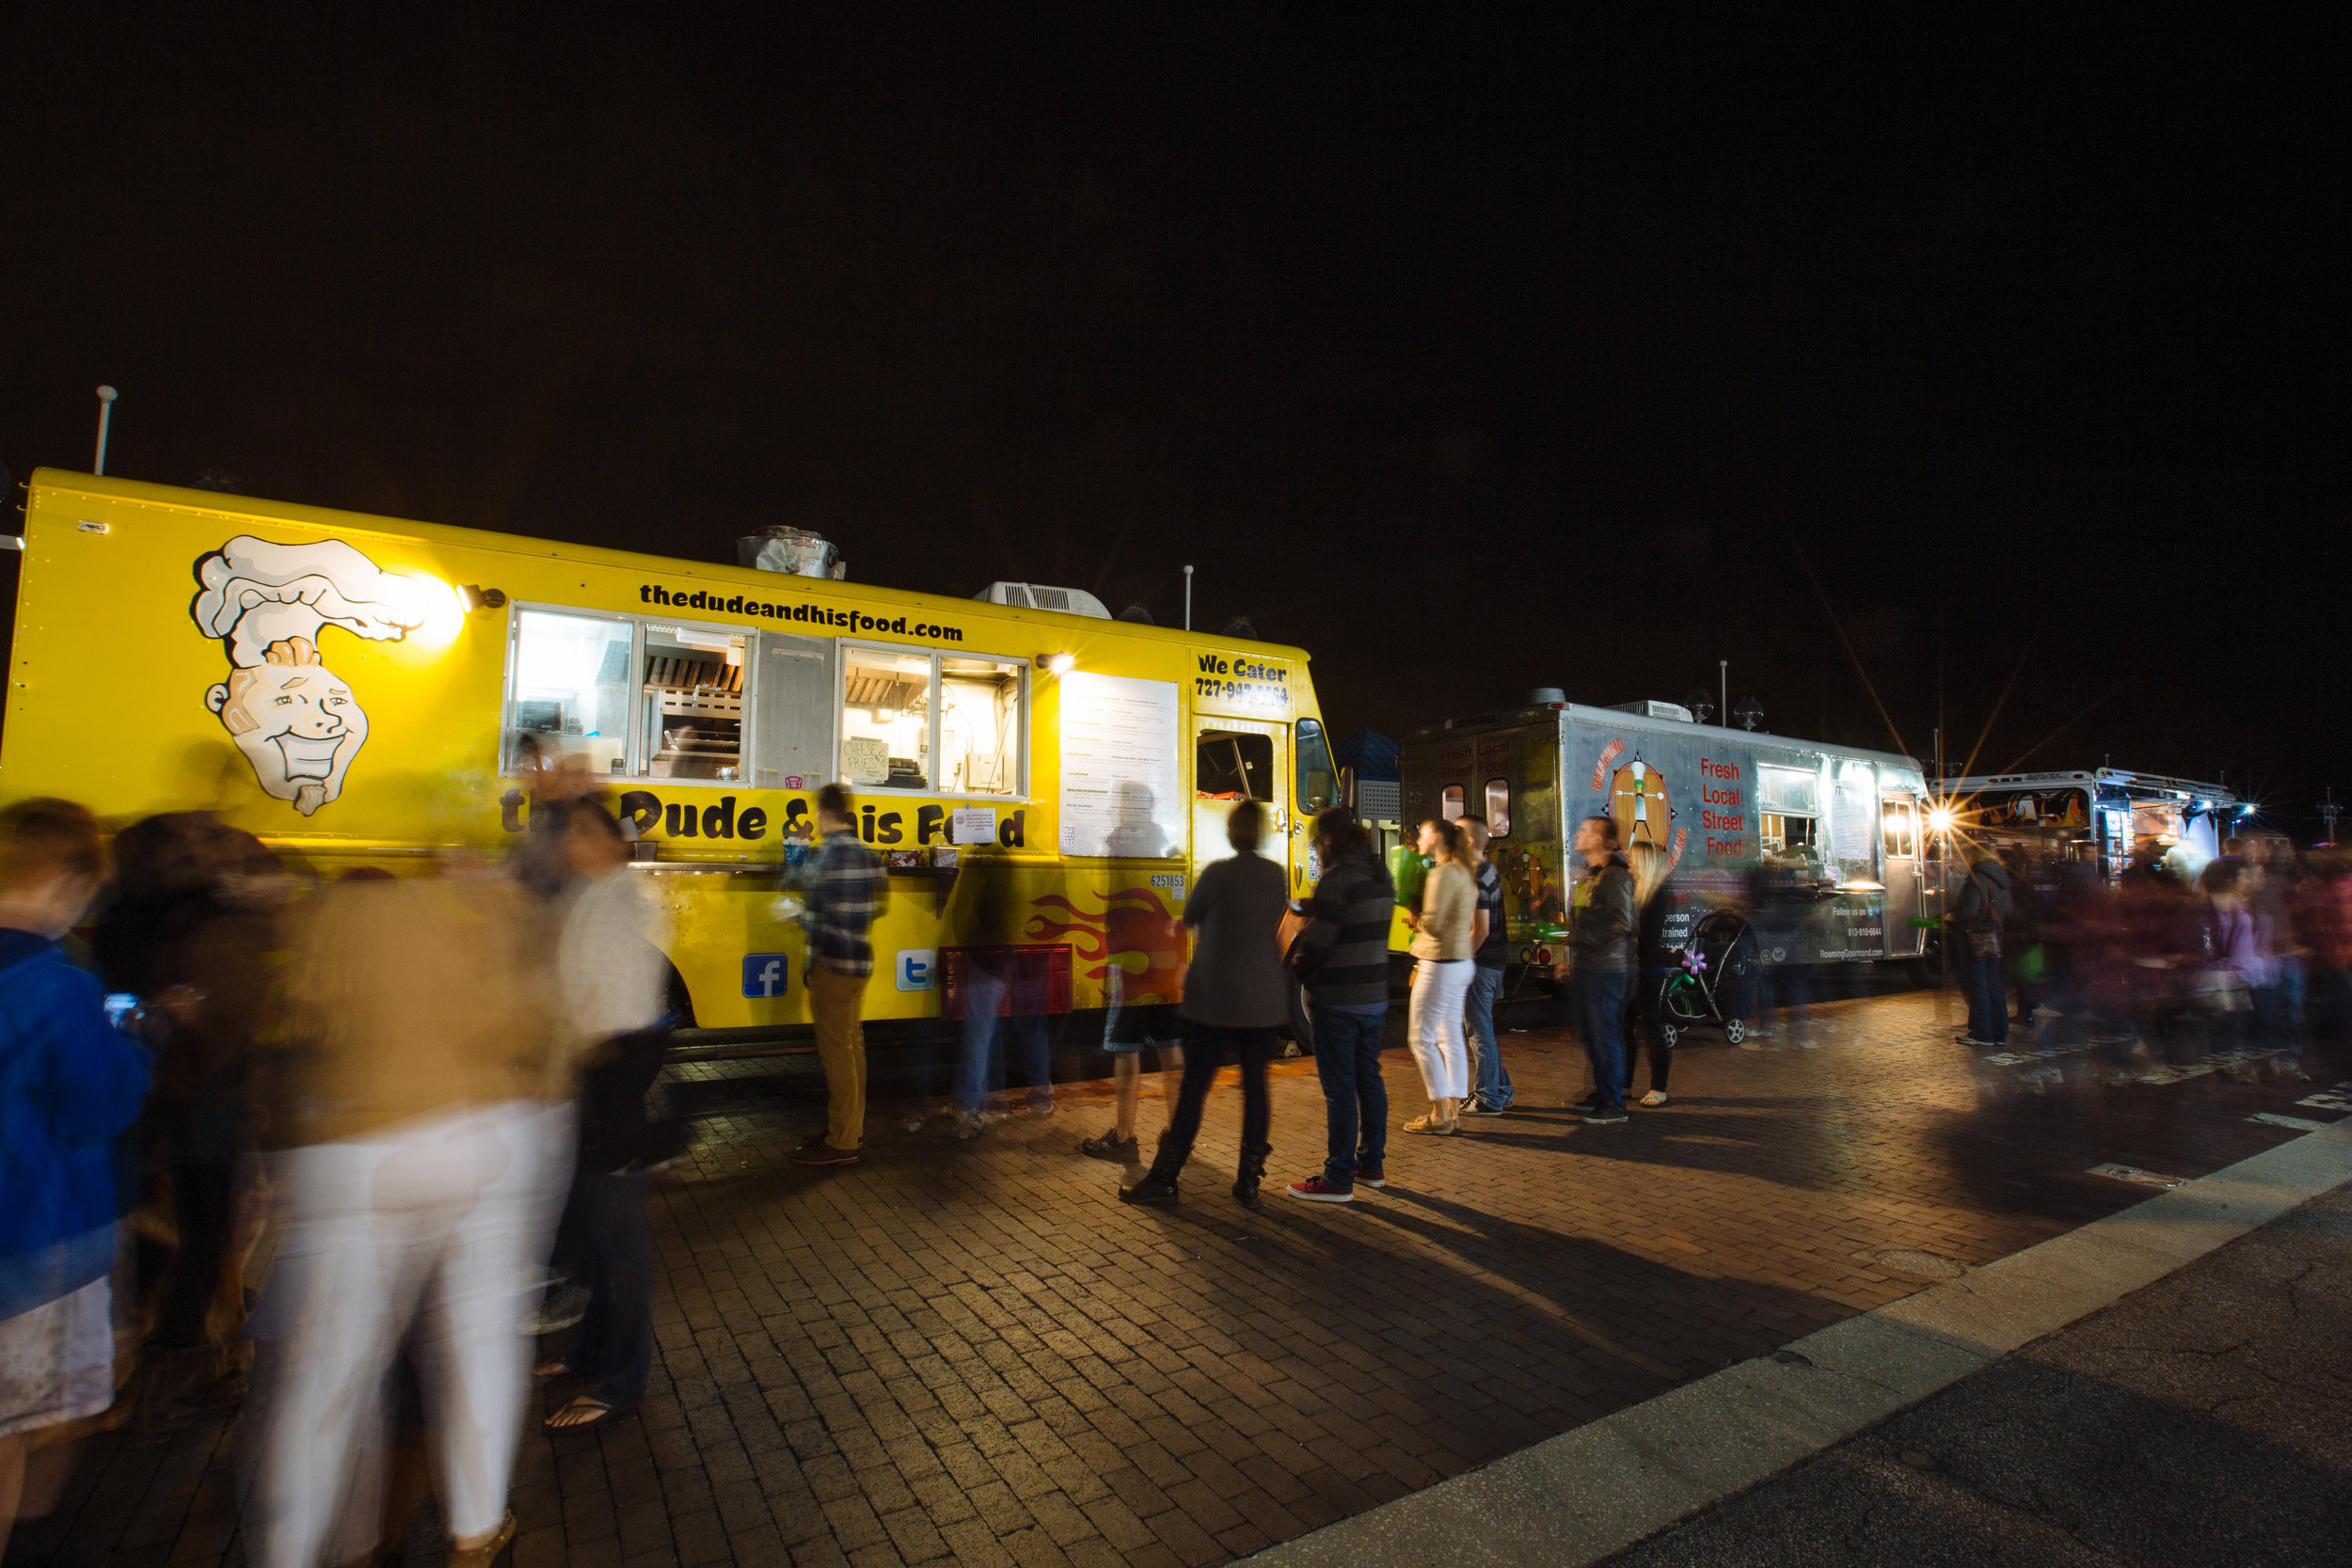 Food trucks at pier in Florida. Image by CityofStPete